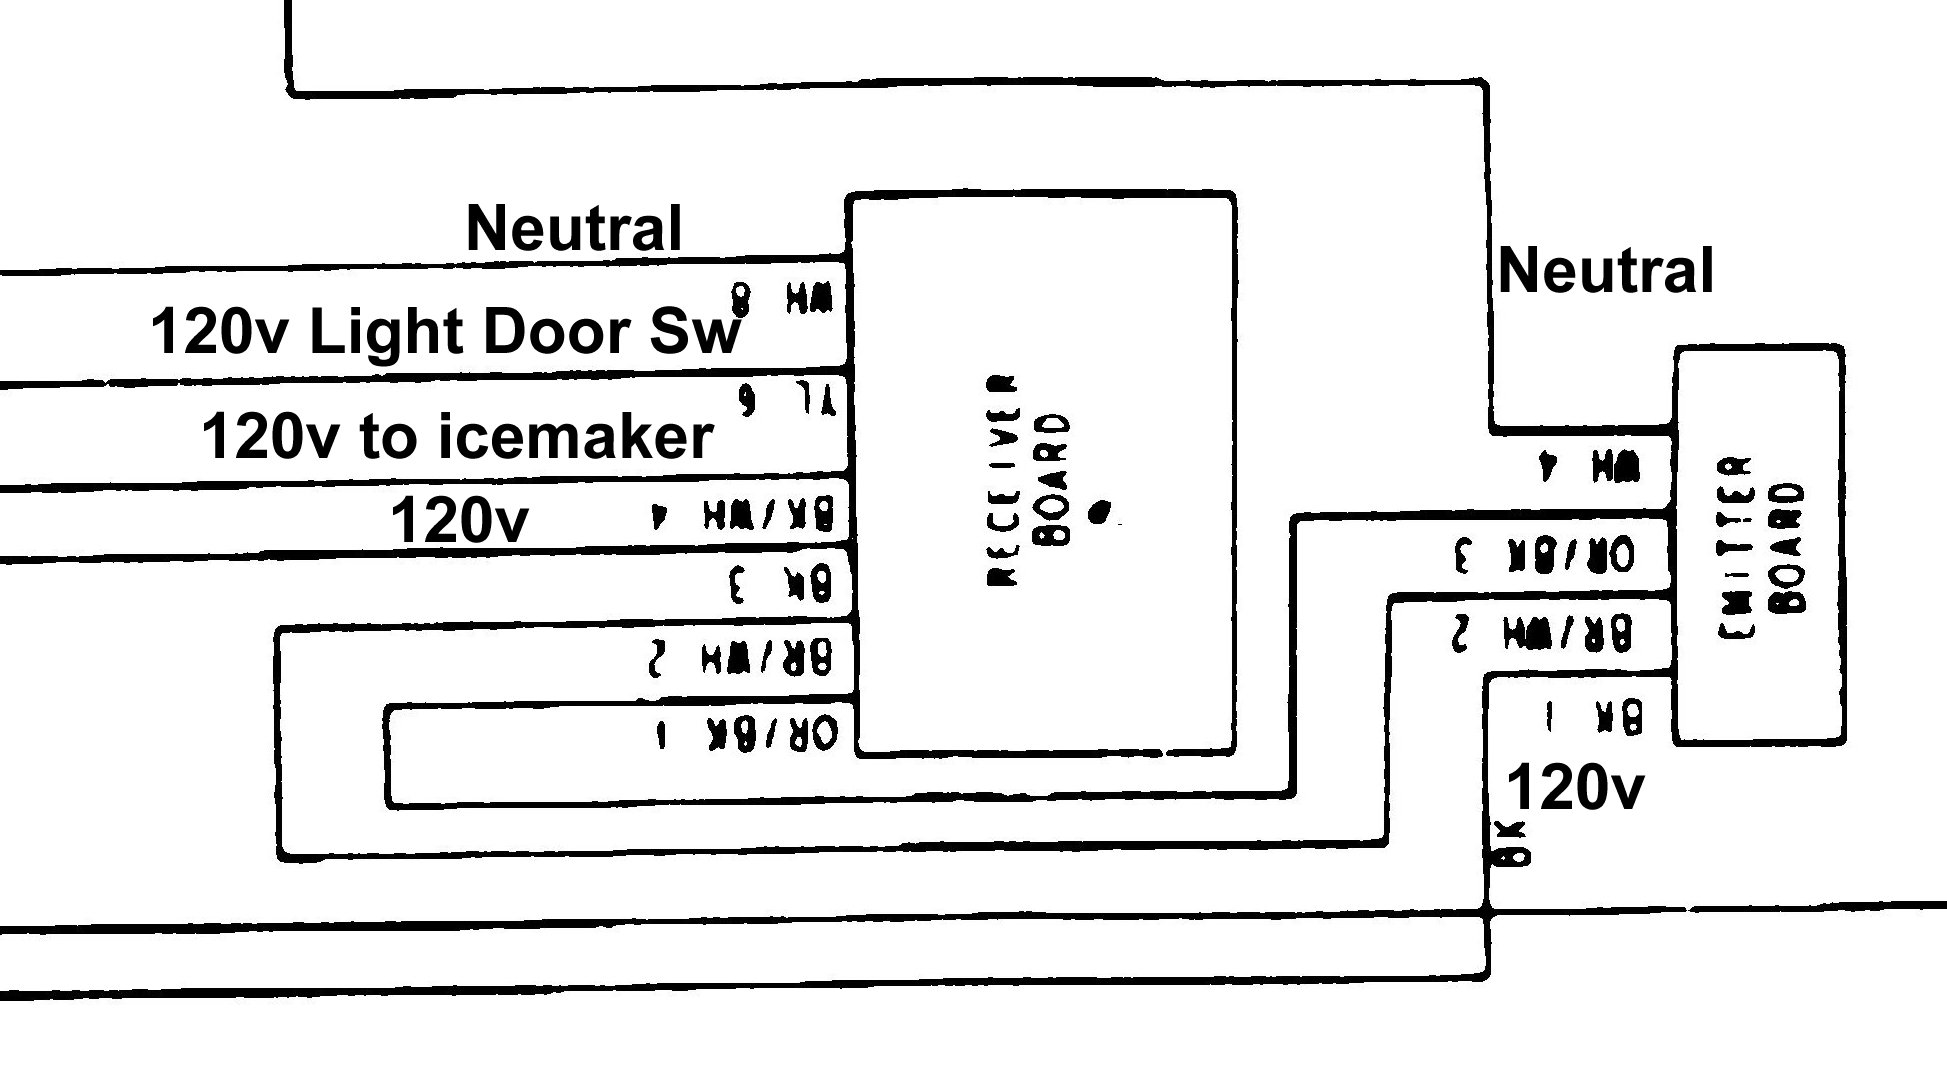 whirlpool fridge icemaker boards kenmore ice maker wiring diagram kenmore ice maker tubing kenmore side by side refrigerator wiring diagram at nearapp.co